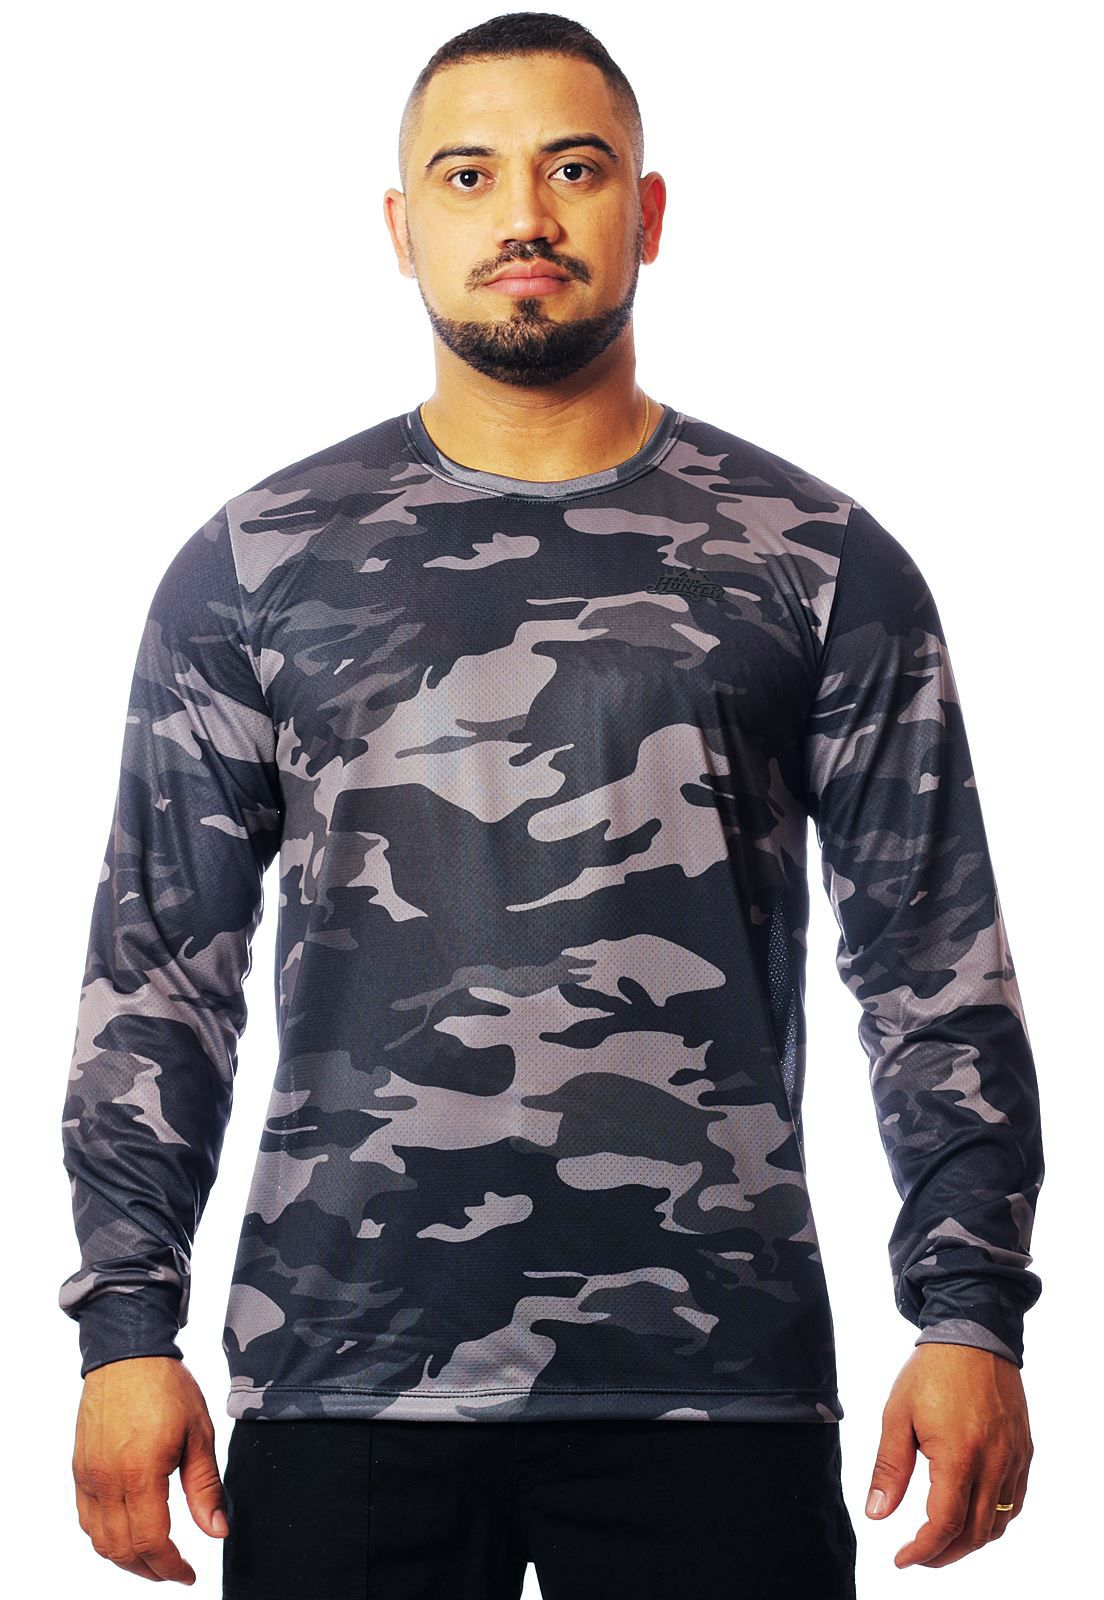 CAMISETA CAMUFLADA URBANO BLACK MASCULINA MANGA LONGA  - REAL HUNTER OUTDOORS